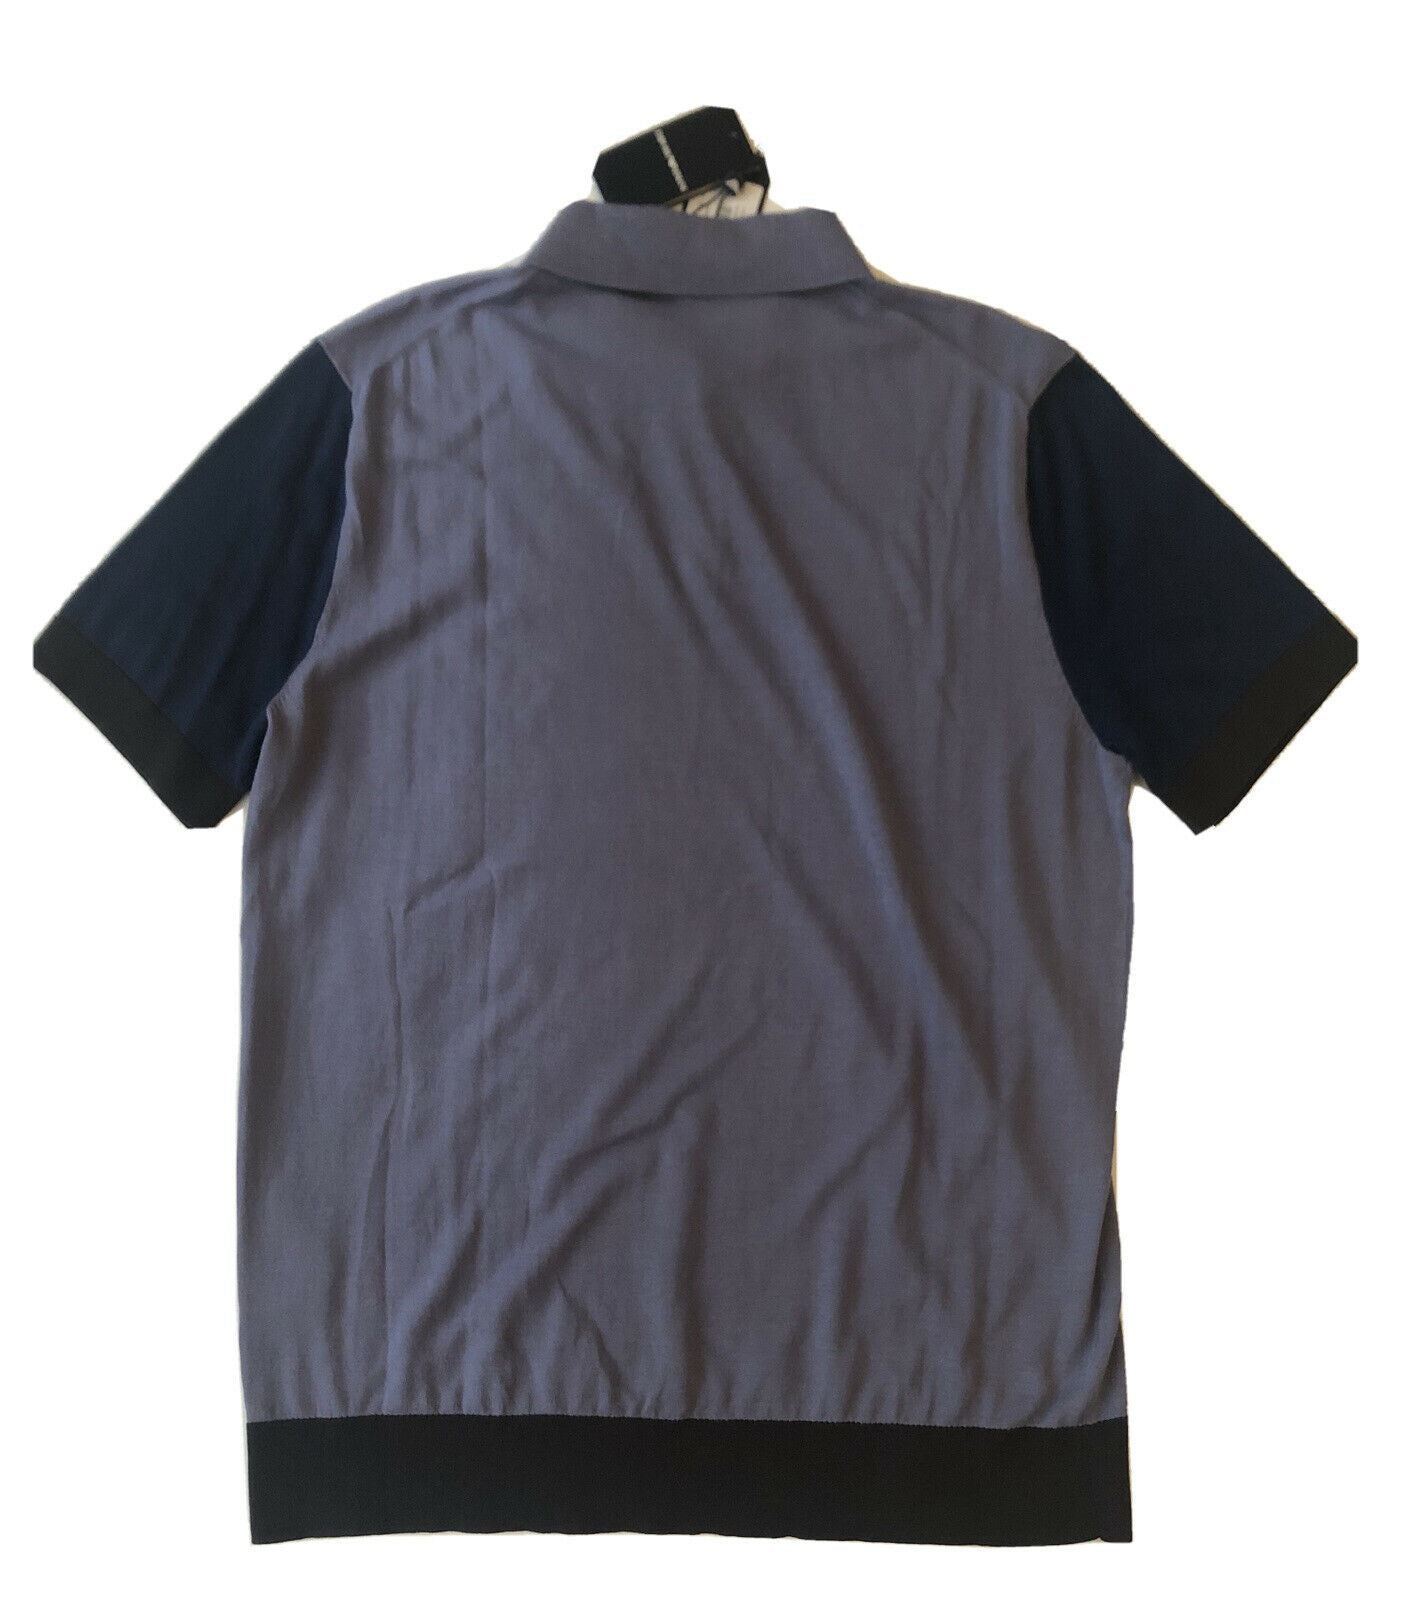 NWT $275 Emporio Armani Short Sleeve Blue Cotton/Silk Polo Shirt 2XL 3Z1MXD